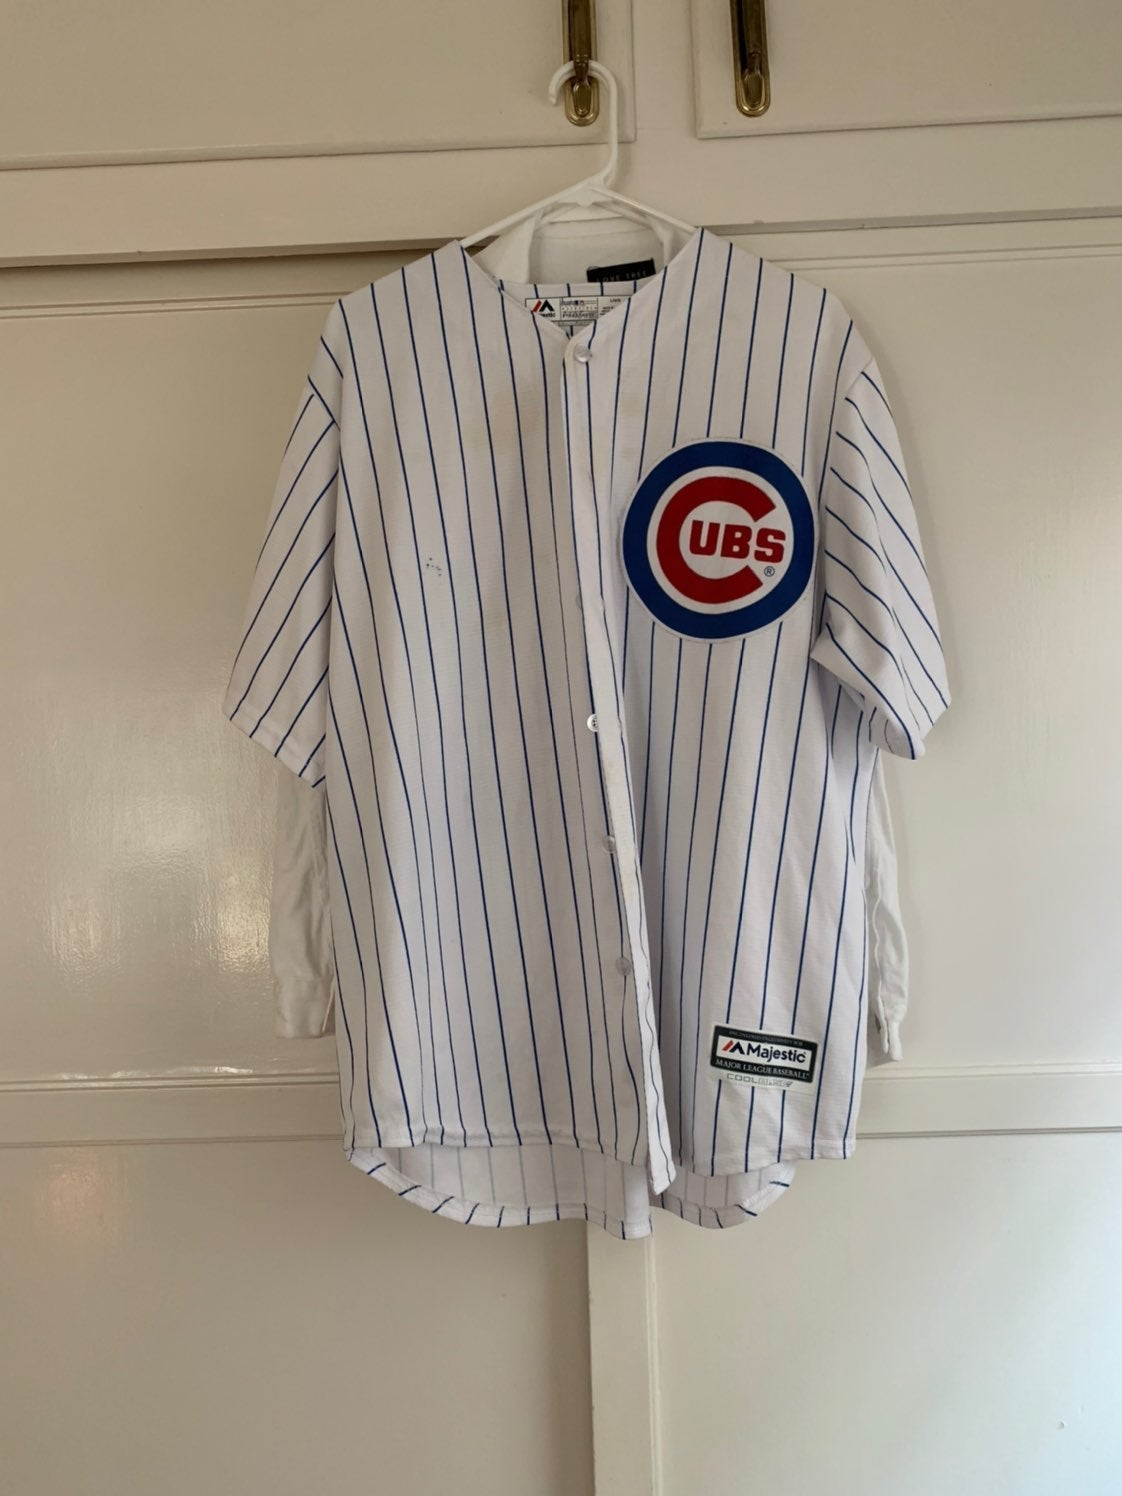 Official Cub jersey has stains